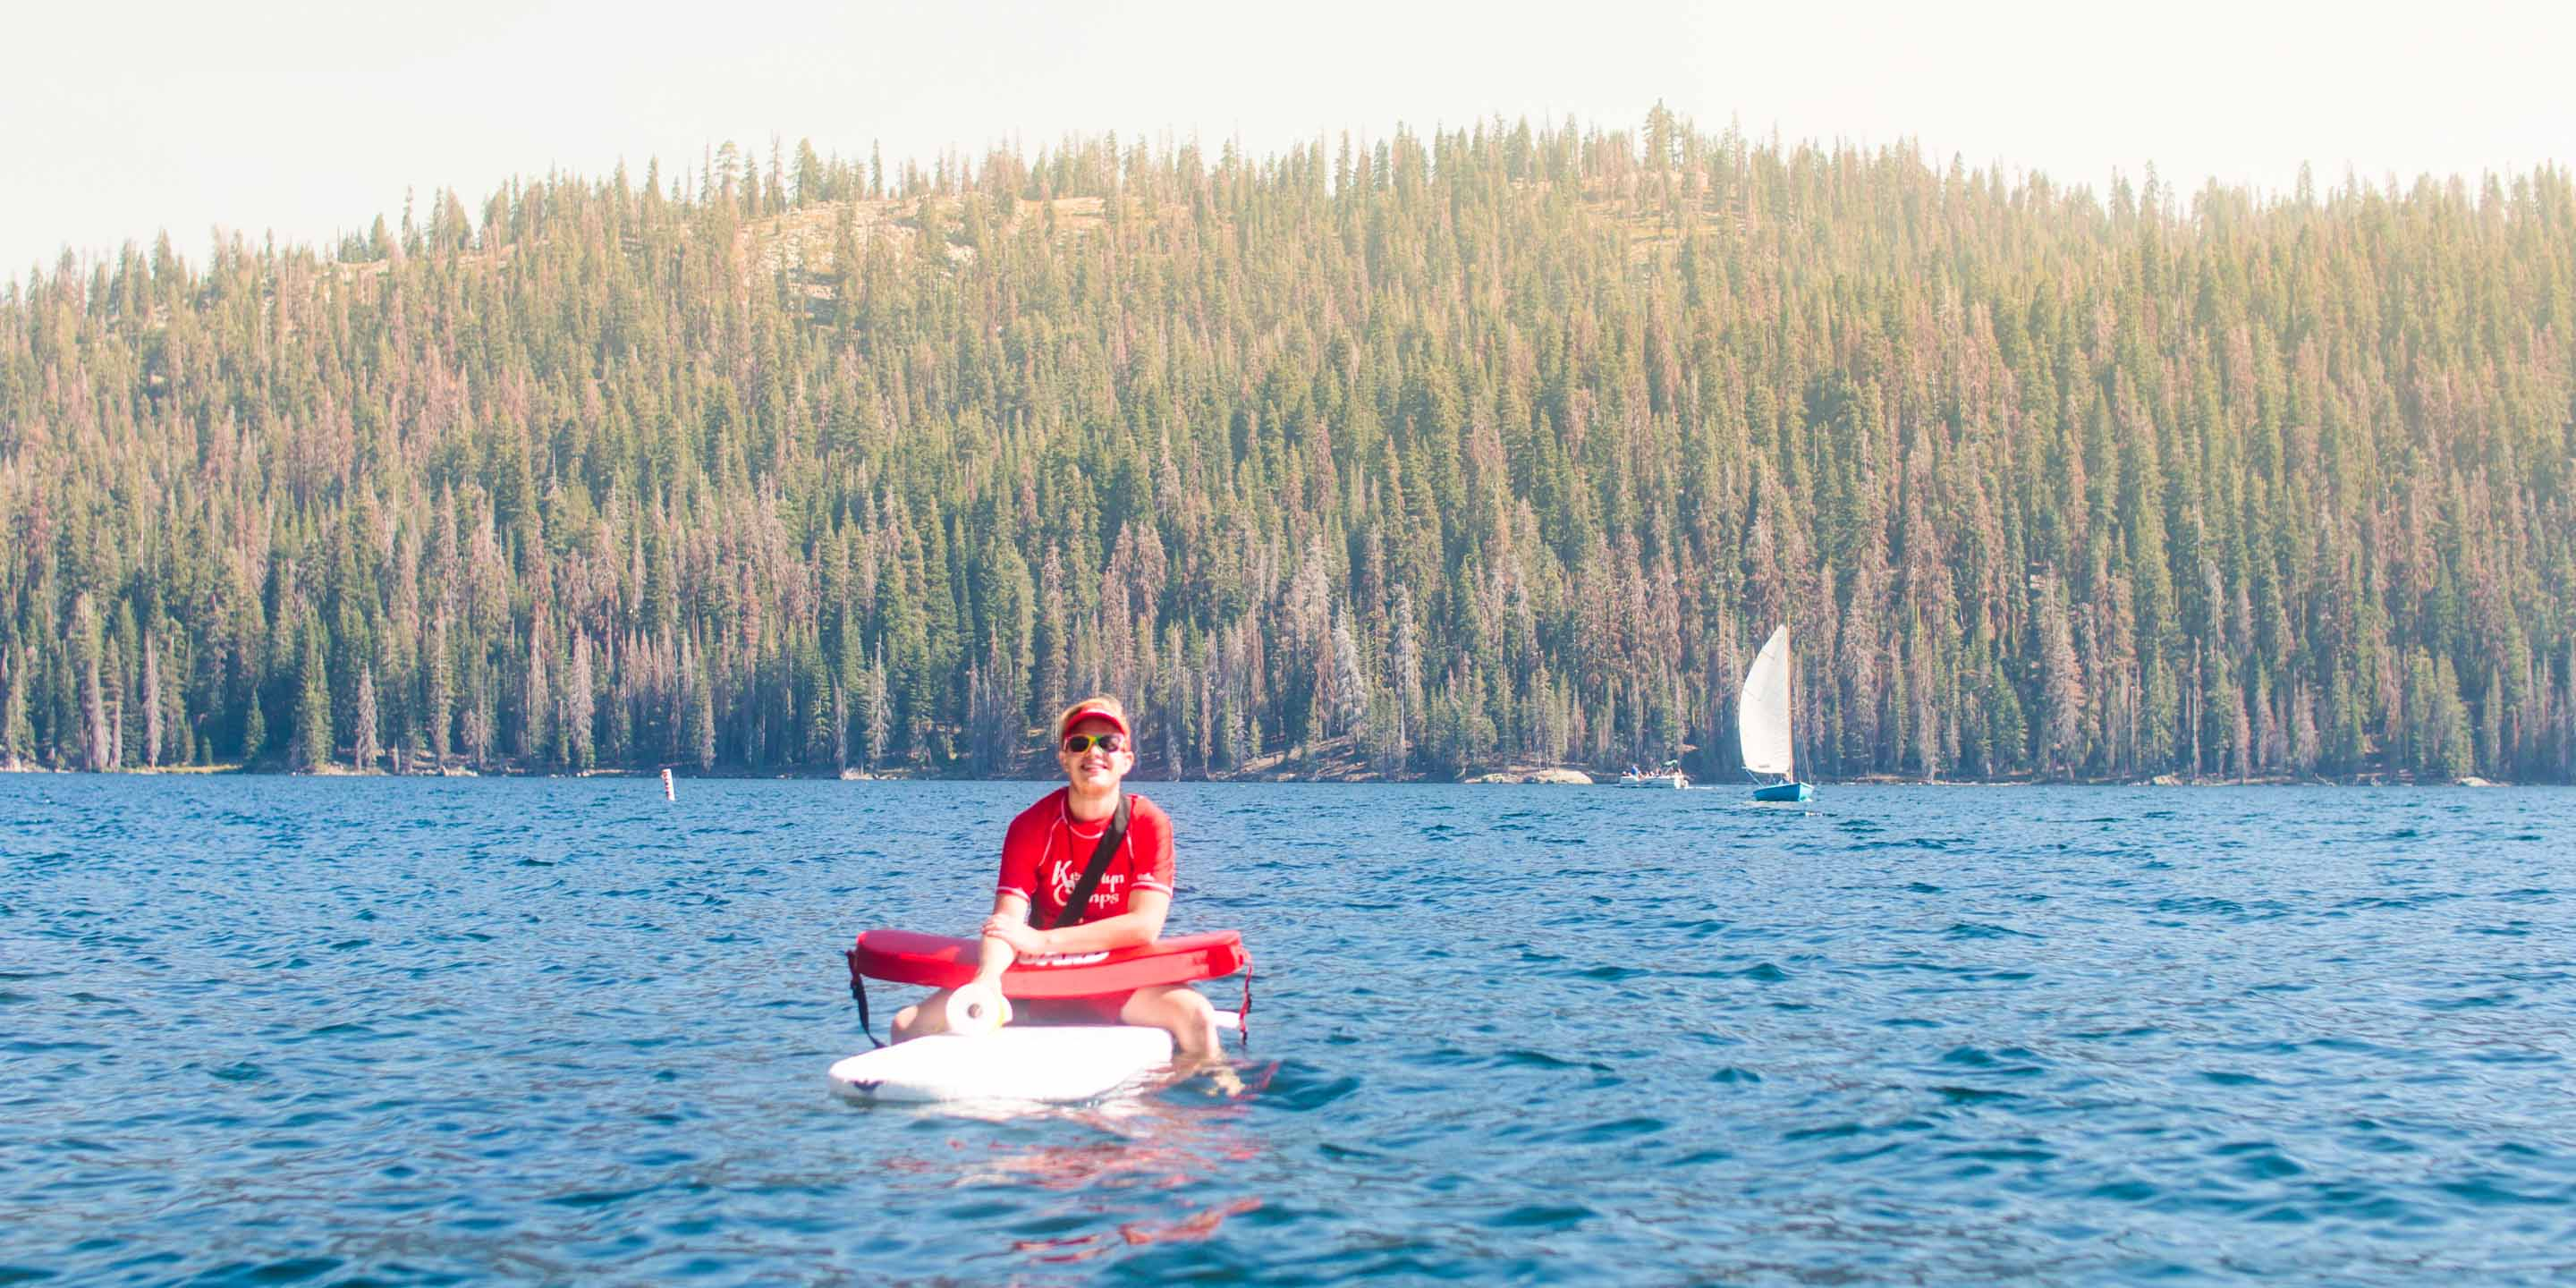 Lifeguard sits on surfboard on Huntington Lake